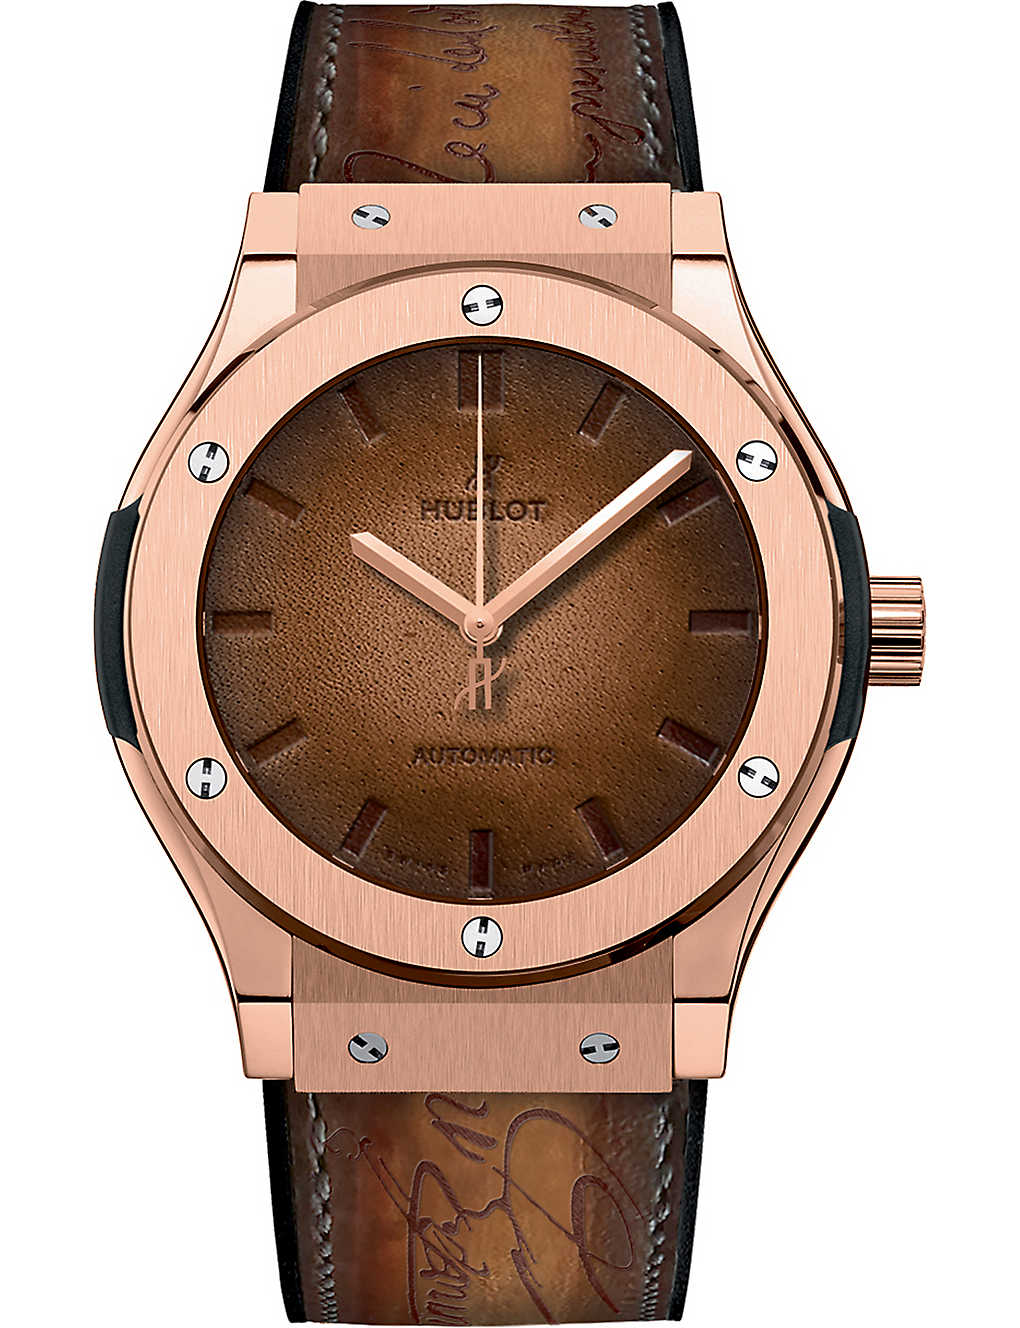 Hublot 511.ox.0500.vr. Ber16 Classic Fusion Berluti 18k King Gold Watch